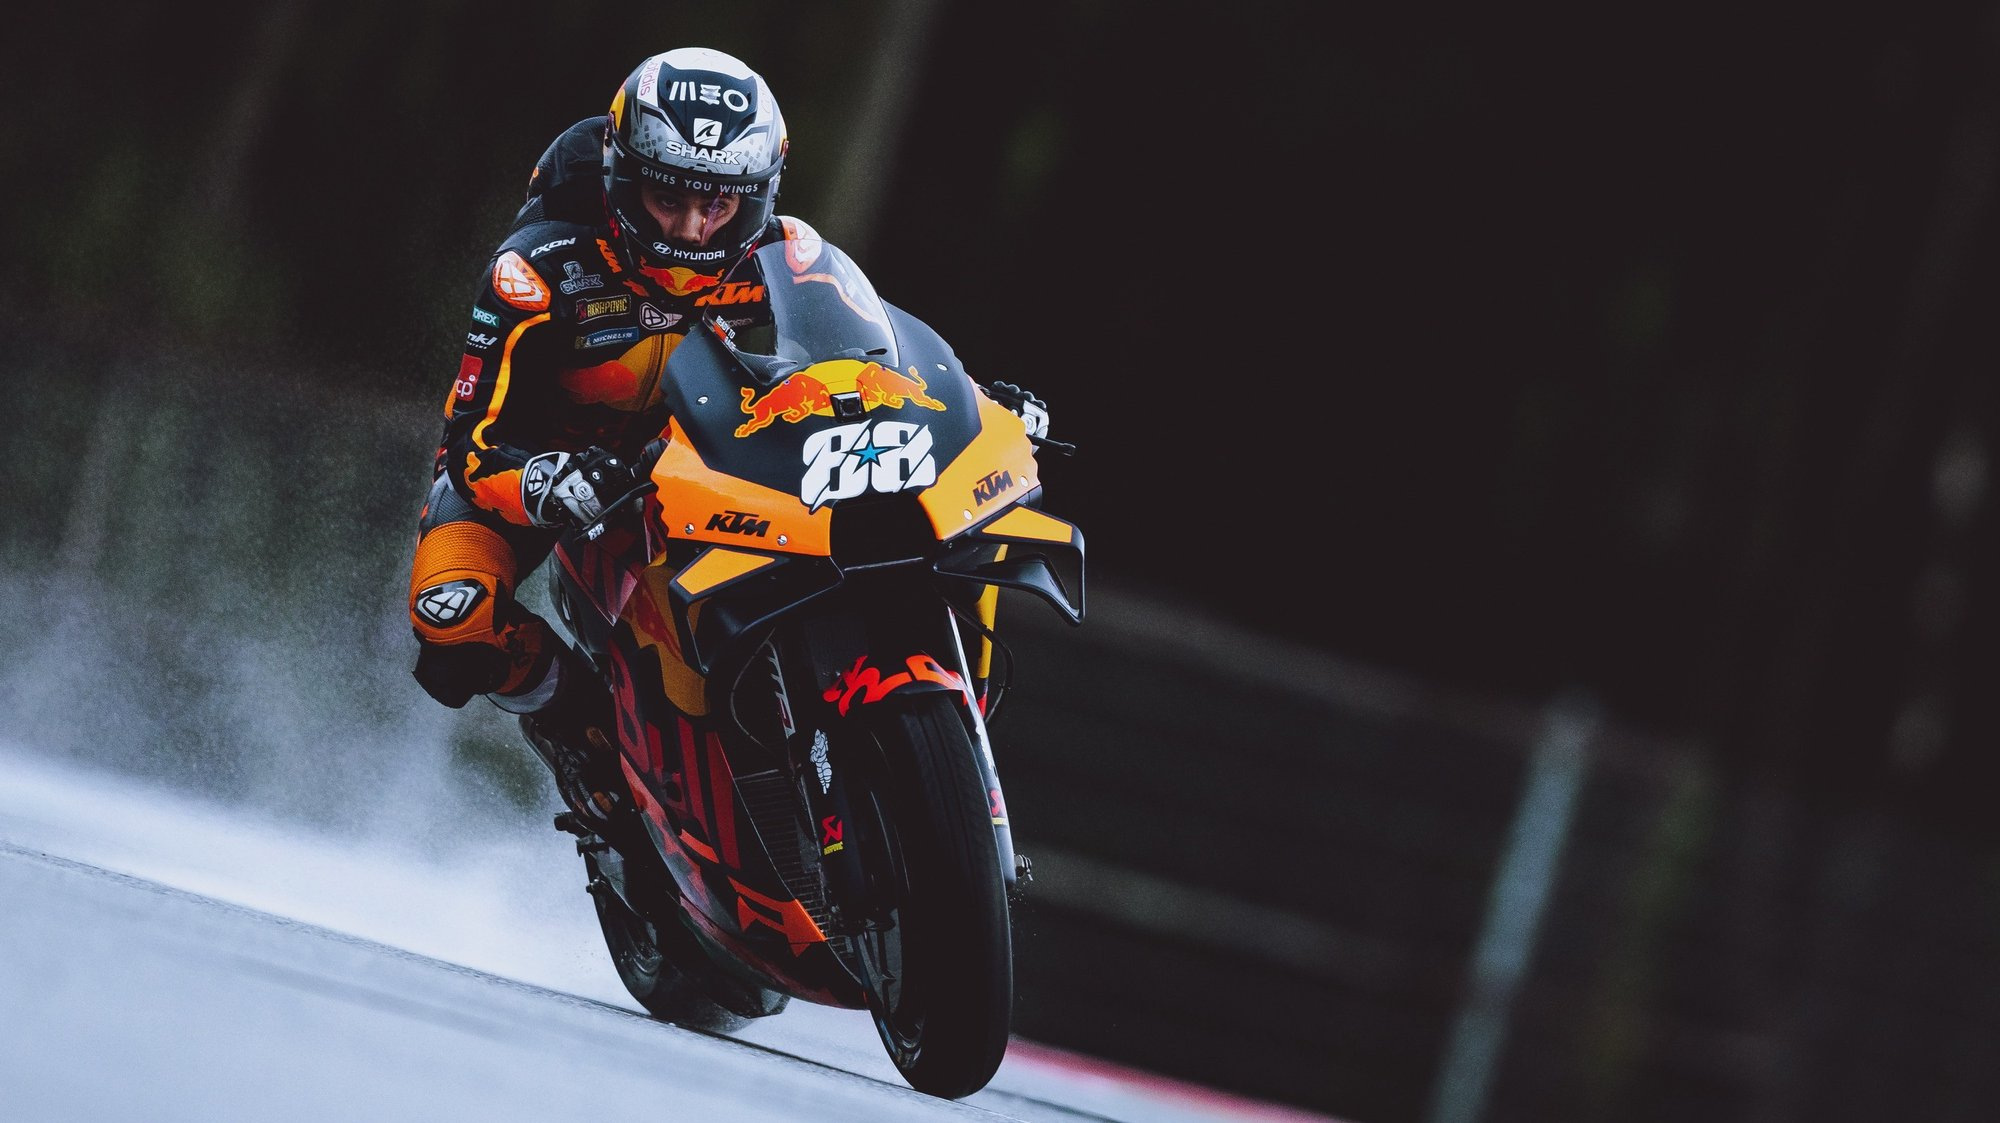 epa09405748 Portuguese MotoGP rider Miguel Oliveira of Red Bull KTM Factory Racing KTM during the warm up for the Grand Prix of Styria at the Red Bull Ring in Spielberg, Austria, 08 August 2021.  EPA/EXPA